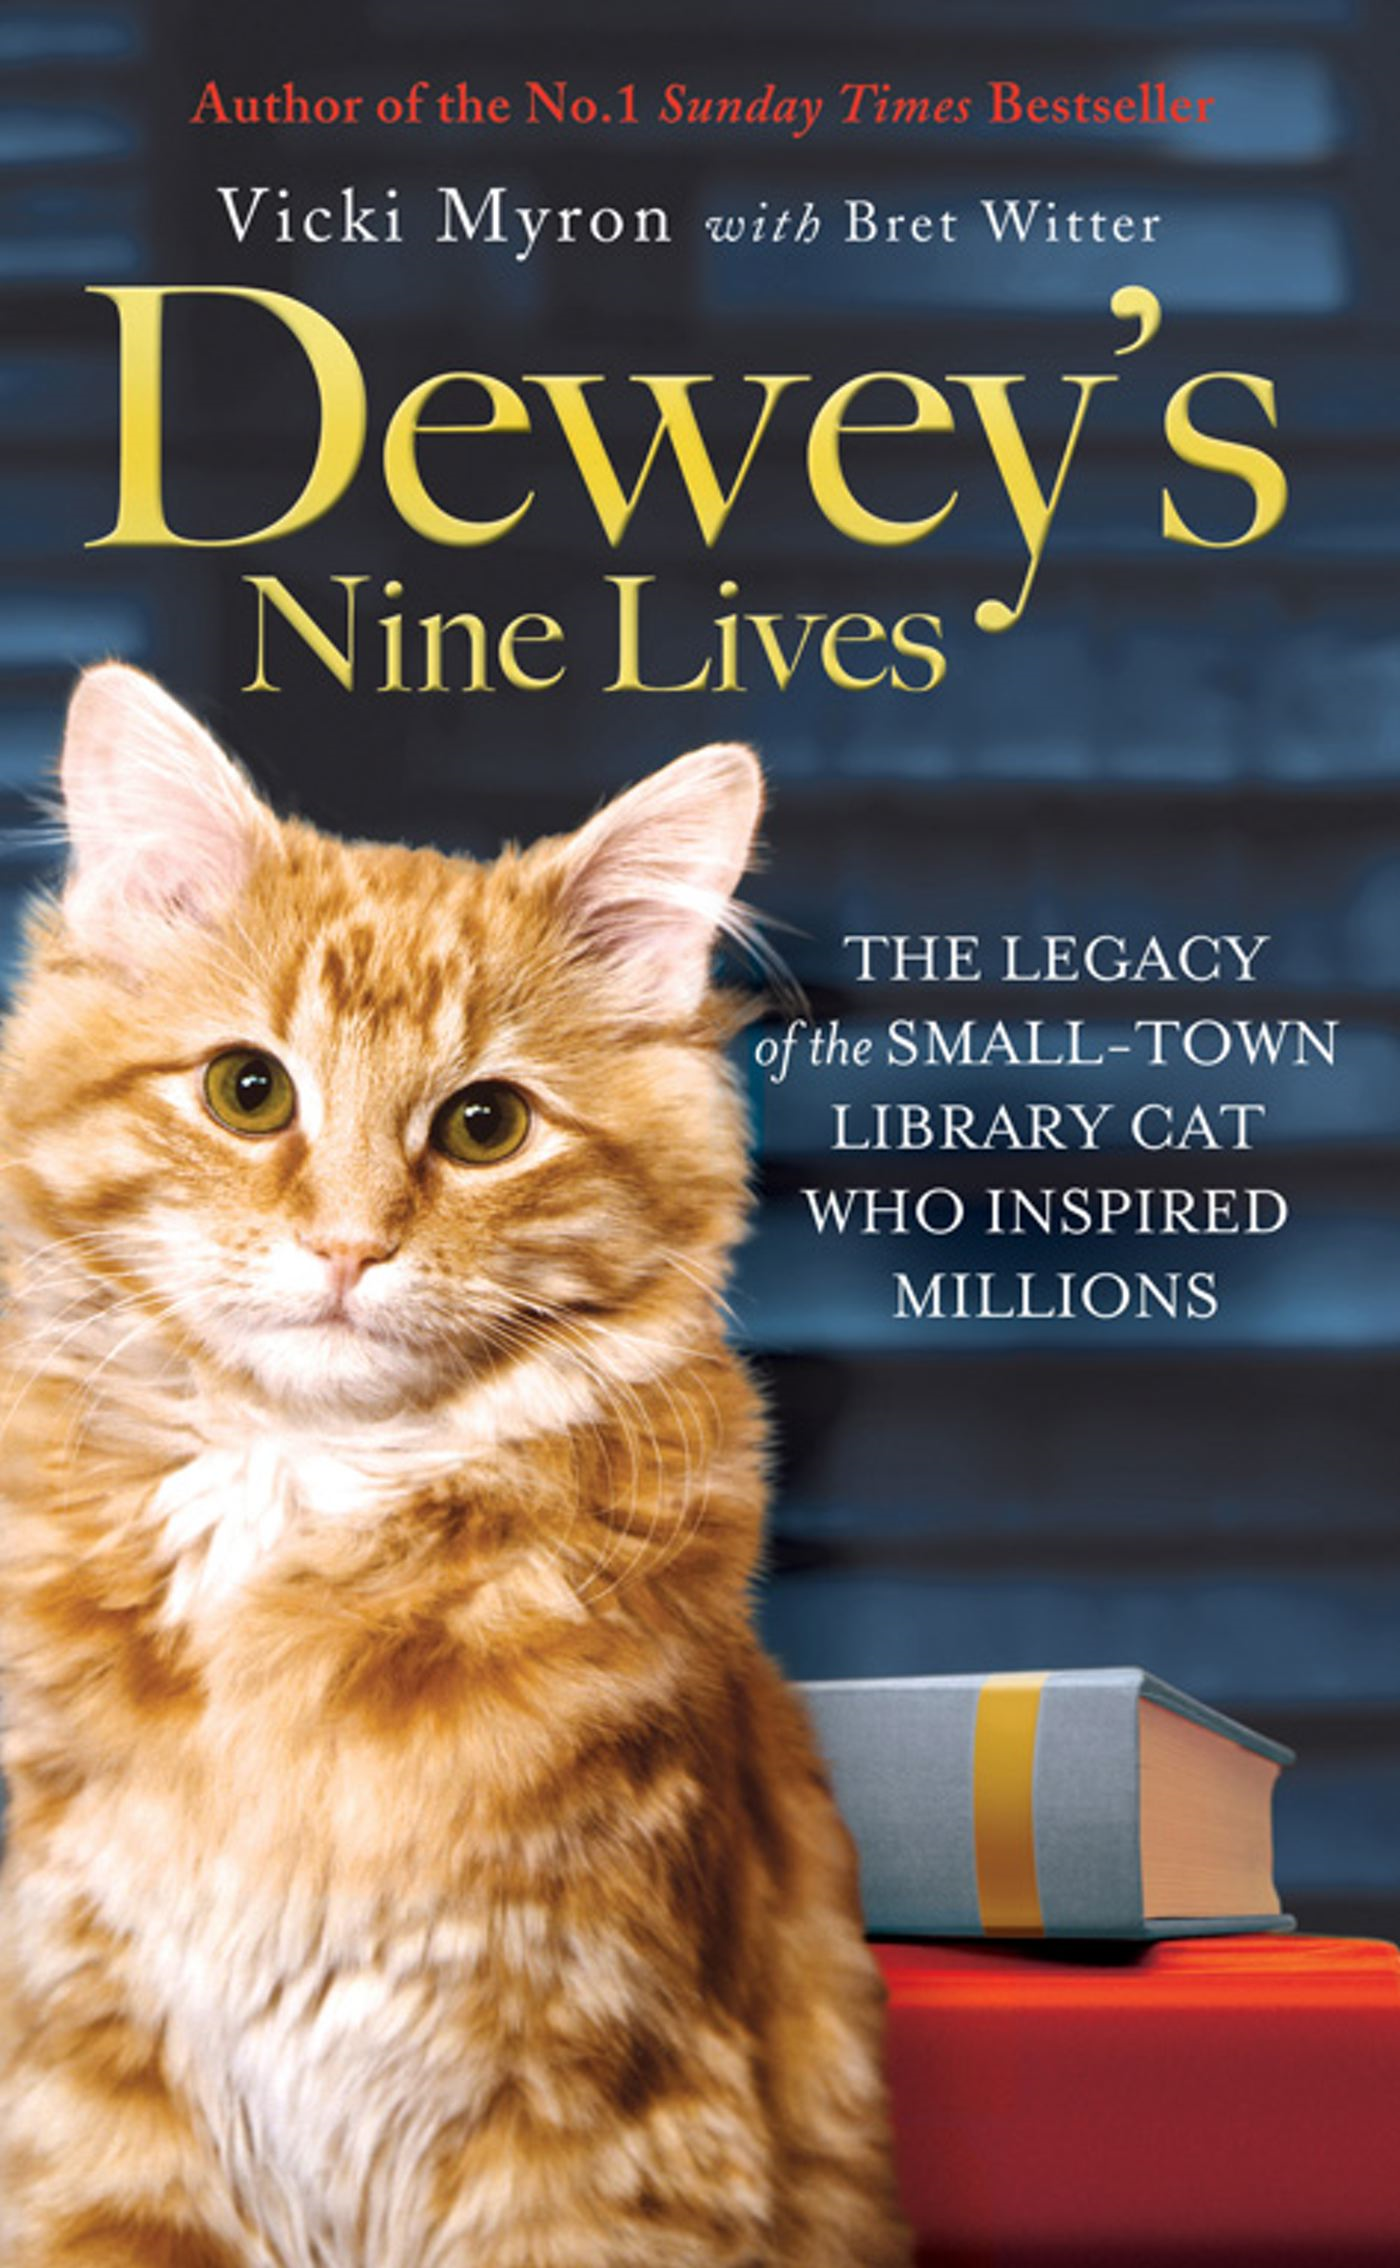 Dewey's Nine Lives The Legacy of the Small-Town Library Cat Who Inspired Millions